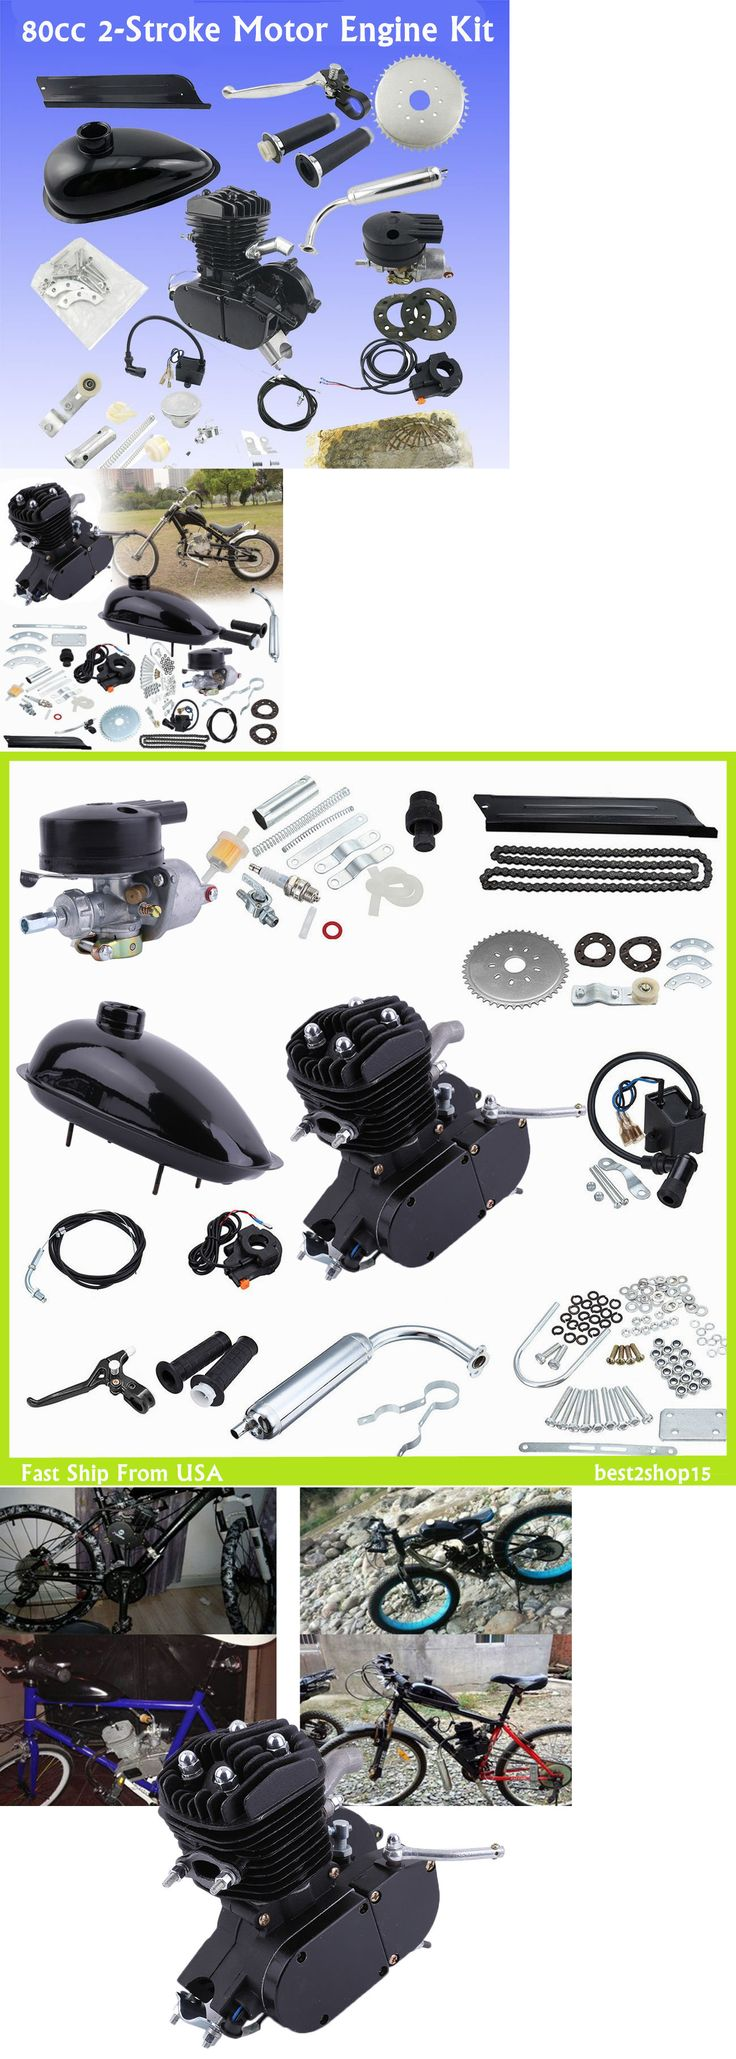 Gas Scooters 75211: New Motor Motorized Chopper Bike Bicycle Gas Engine 80Cc Scooter Moped Kit Us Hp -> BUY IT NOW ONLY: $98 on eBay!